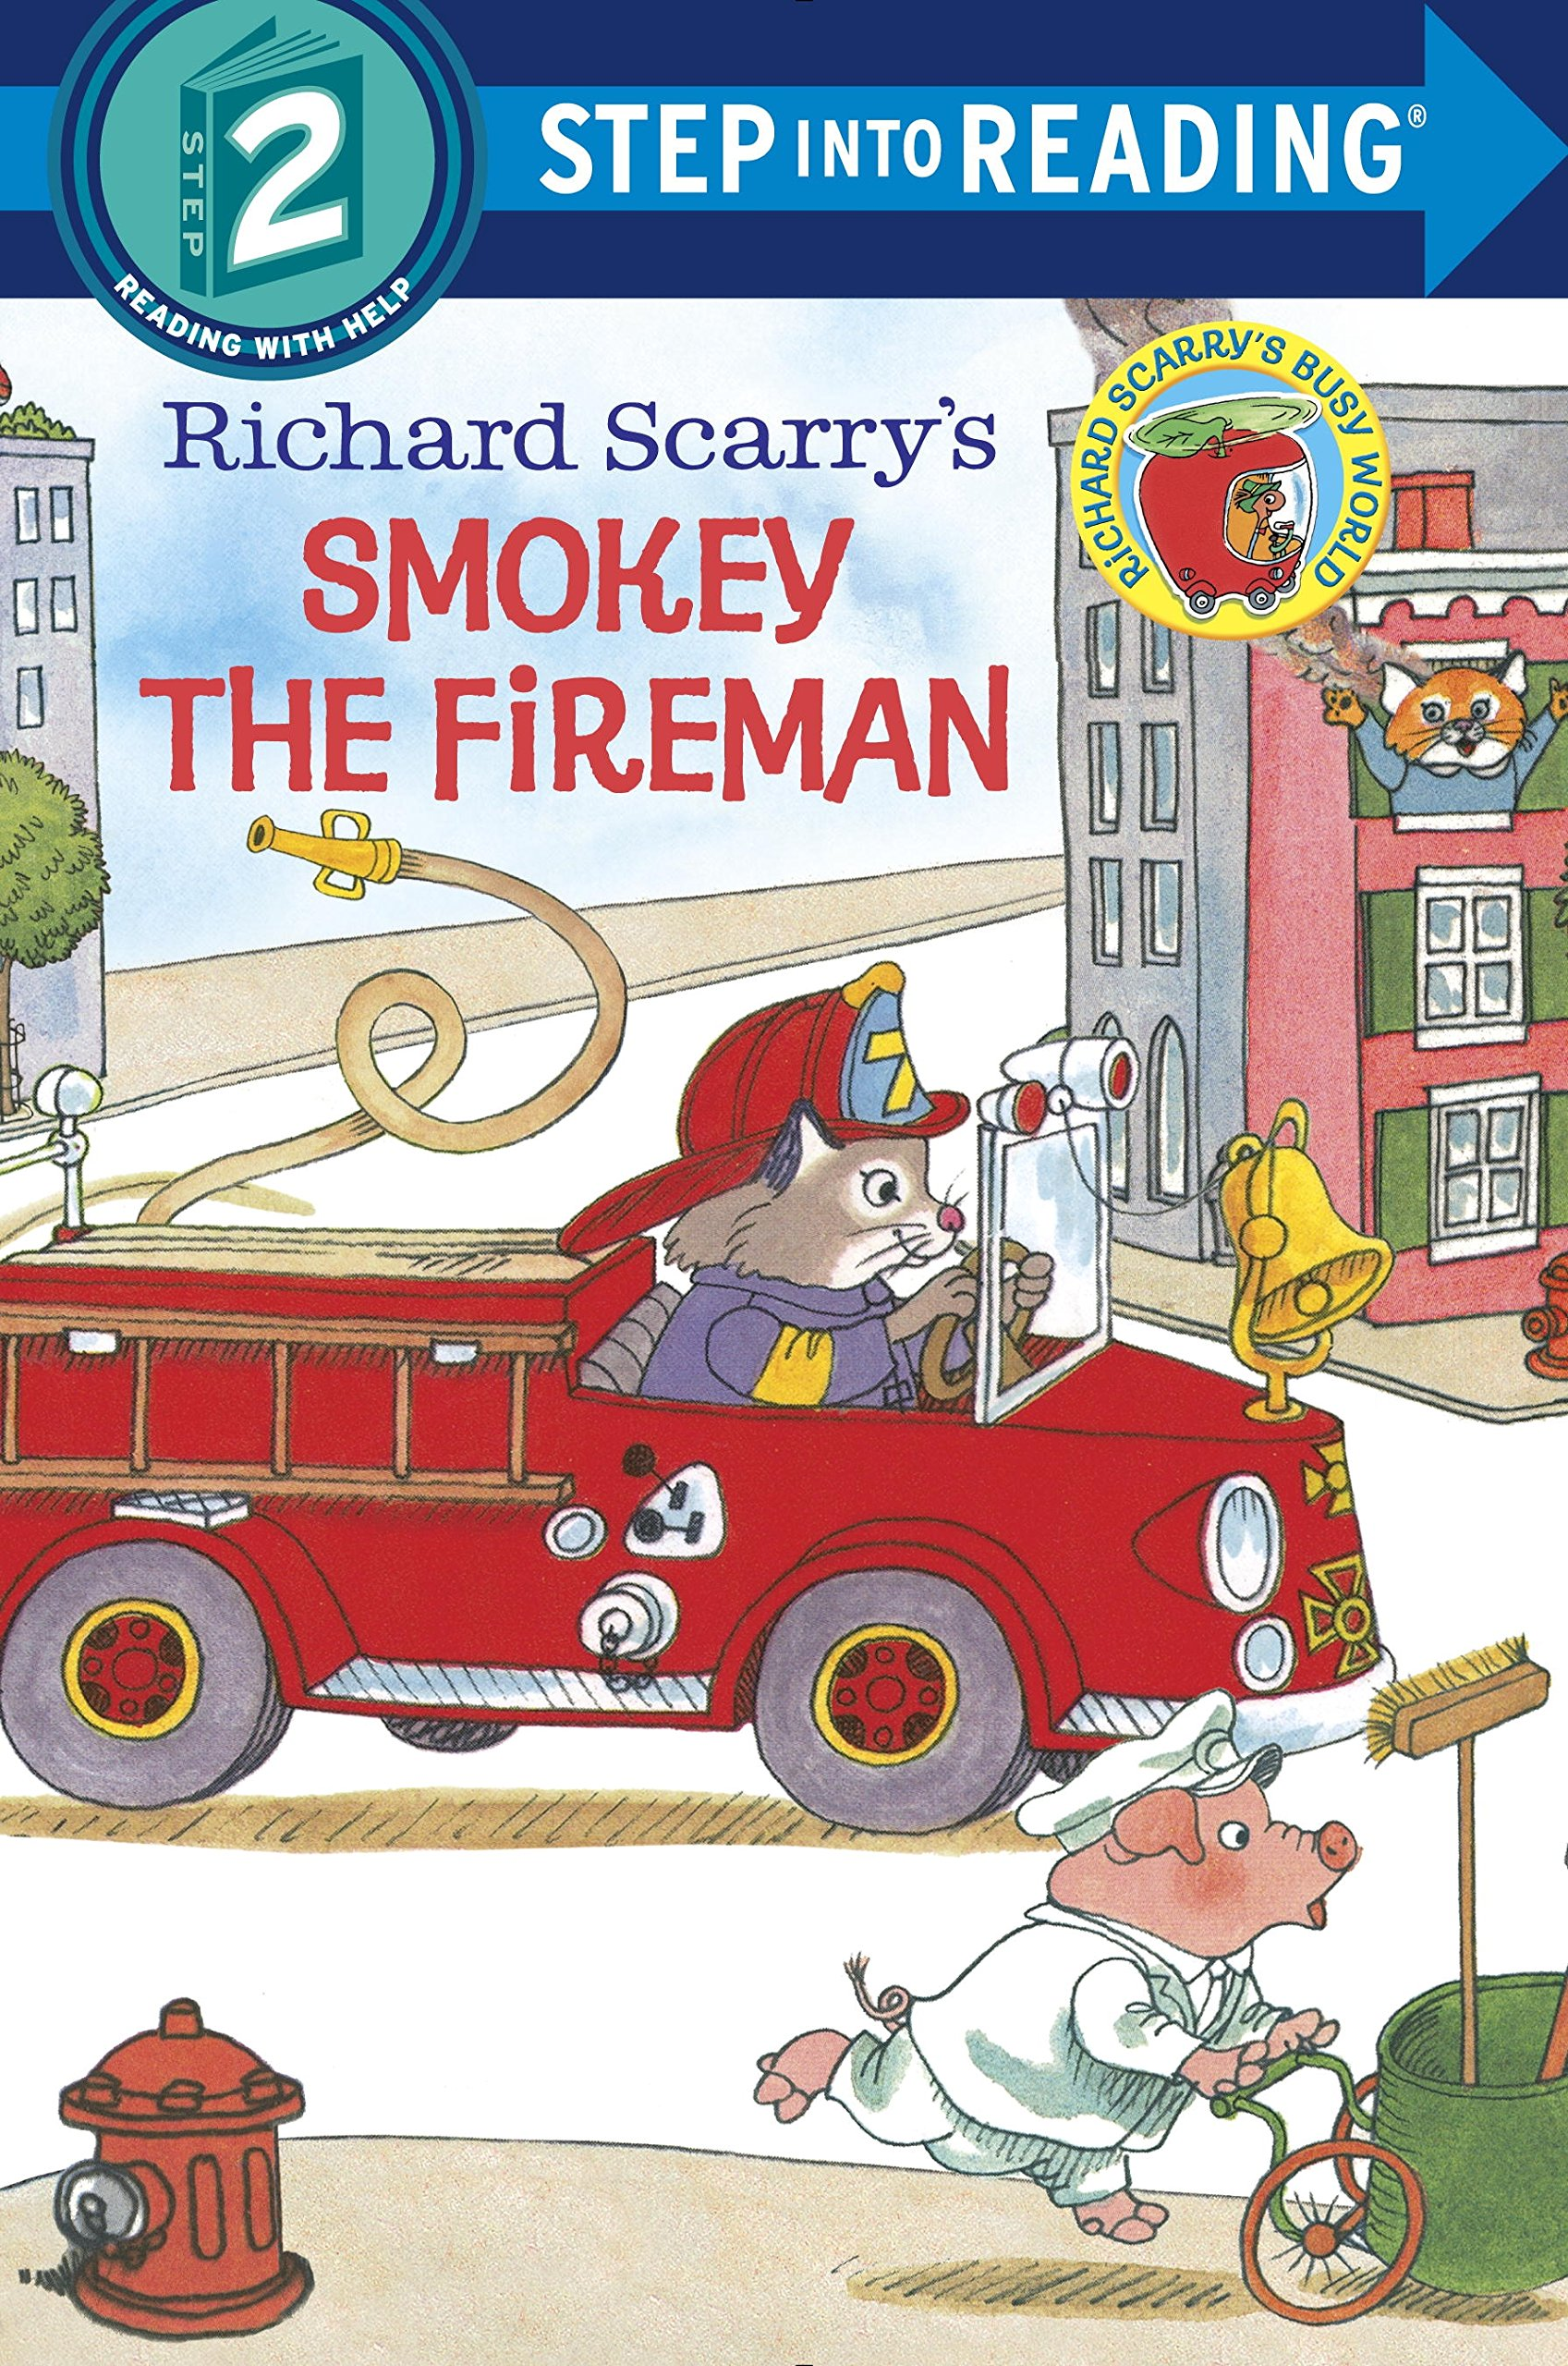 Richard Scarry's Smokey the Fireman (Step into Reading)